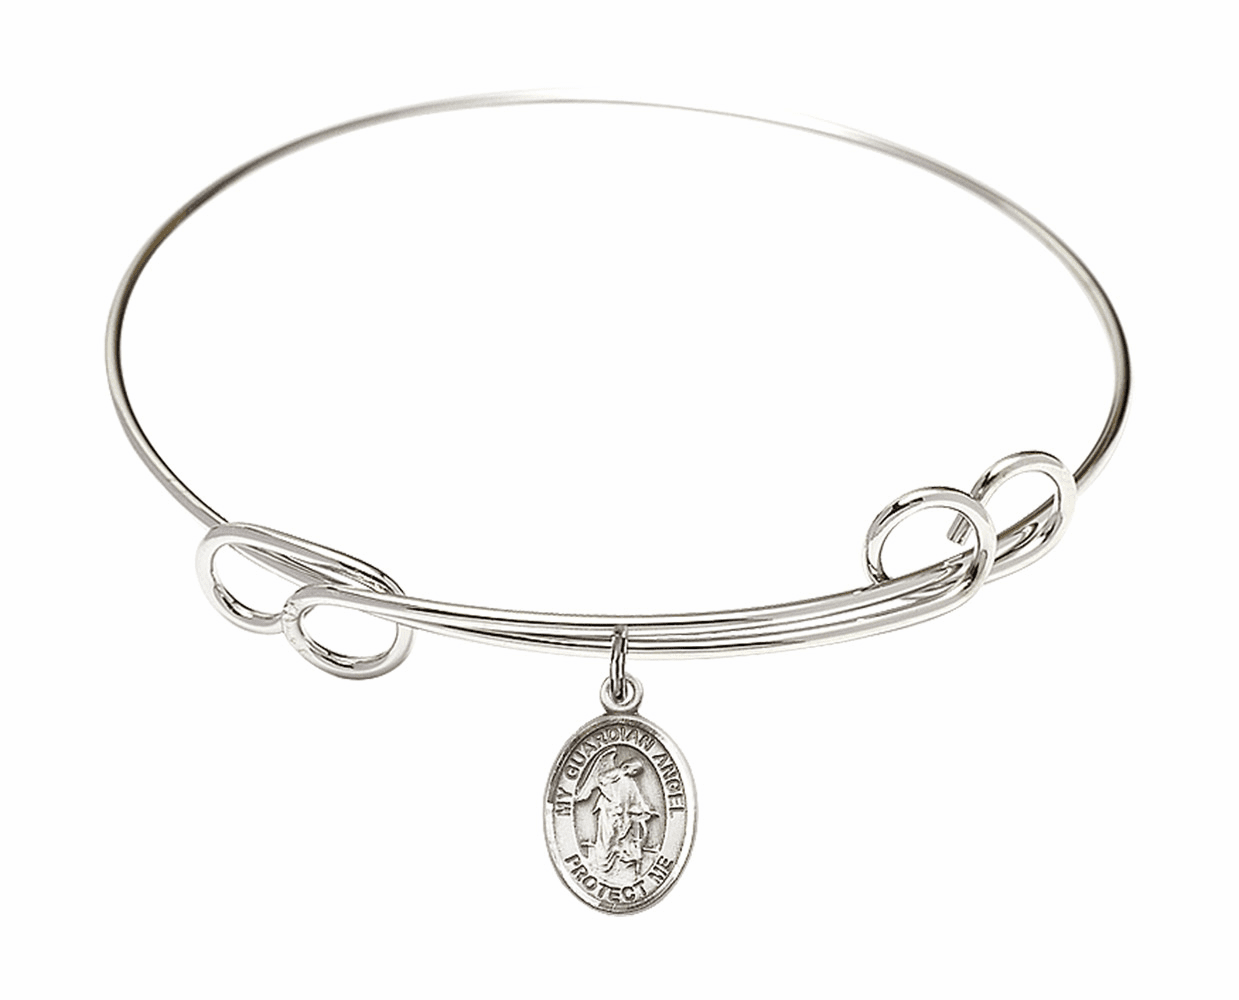 Round Loop Guardian Angel Bangle Charm Bracelet by Bliss